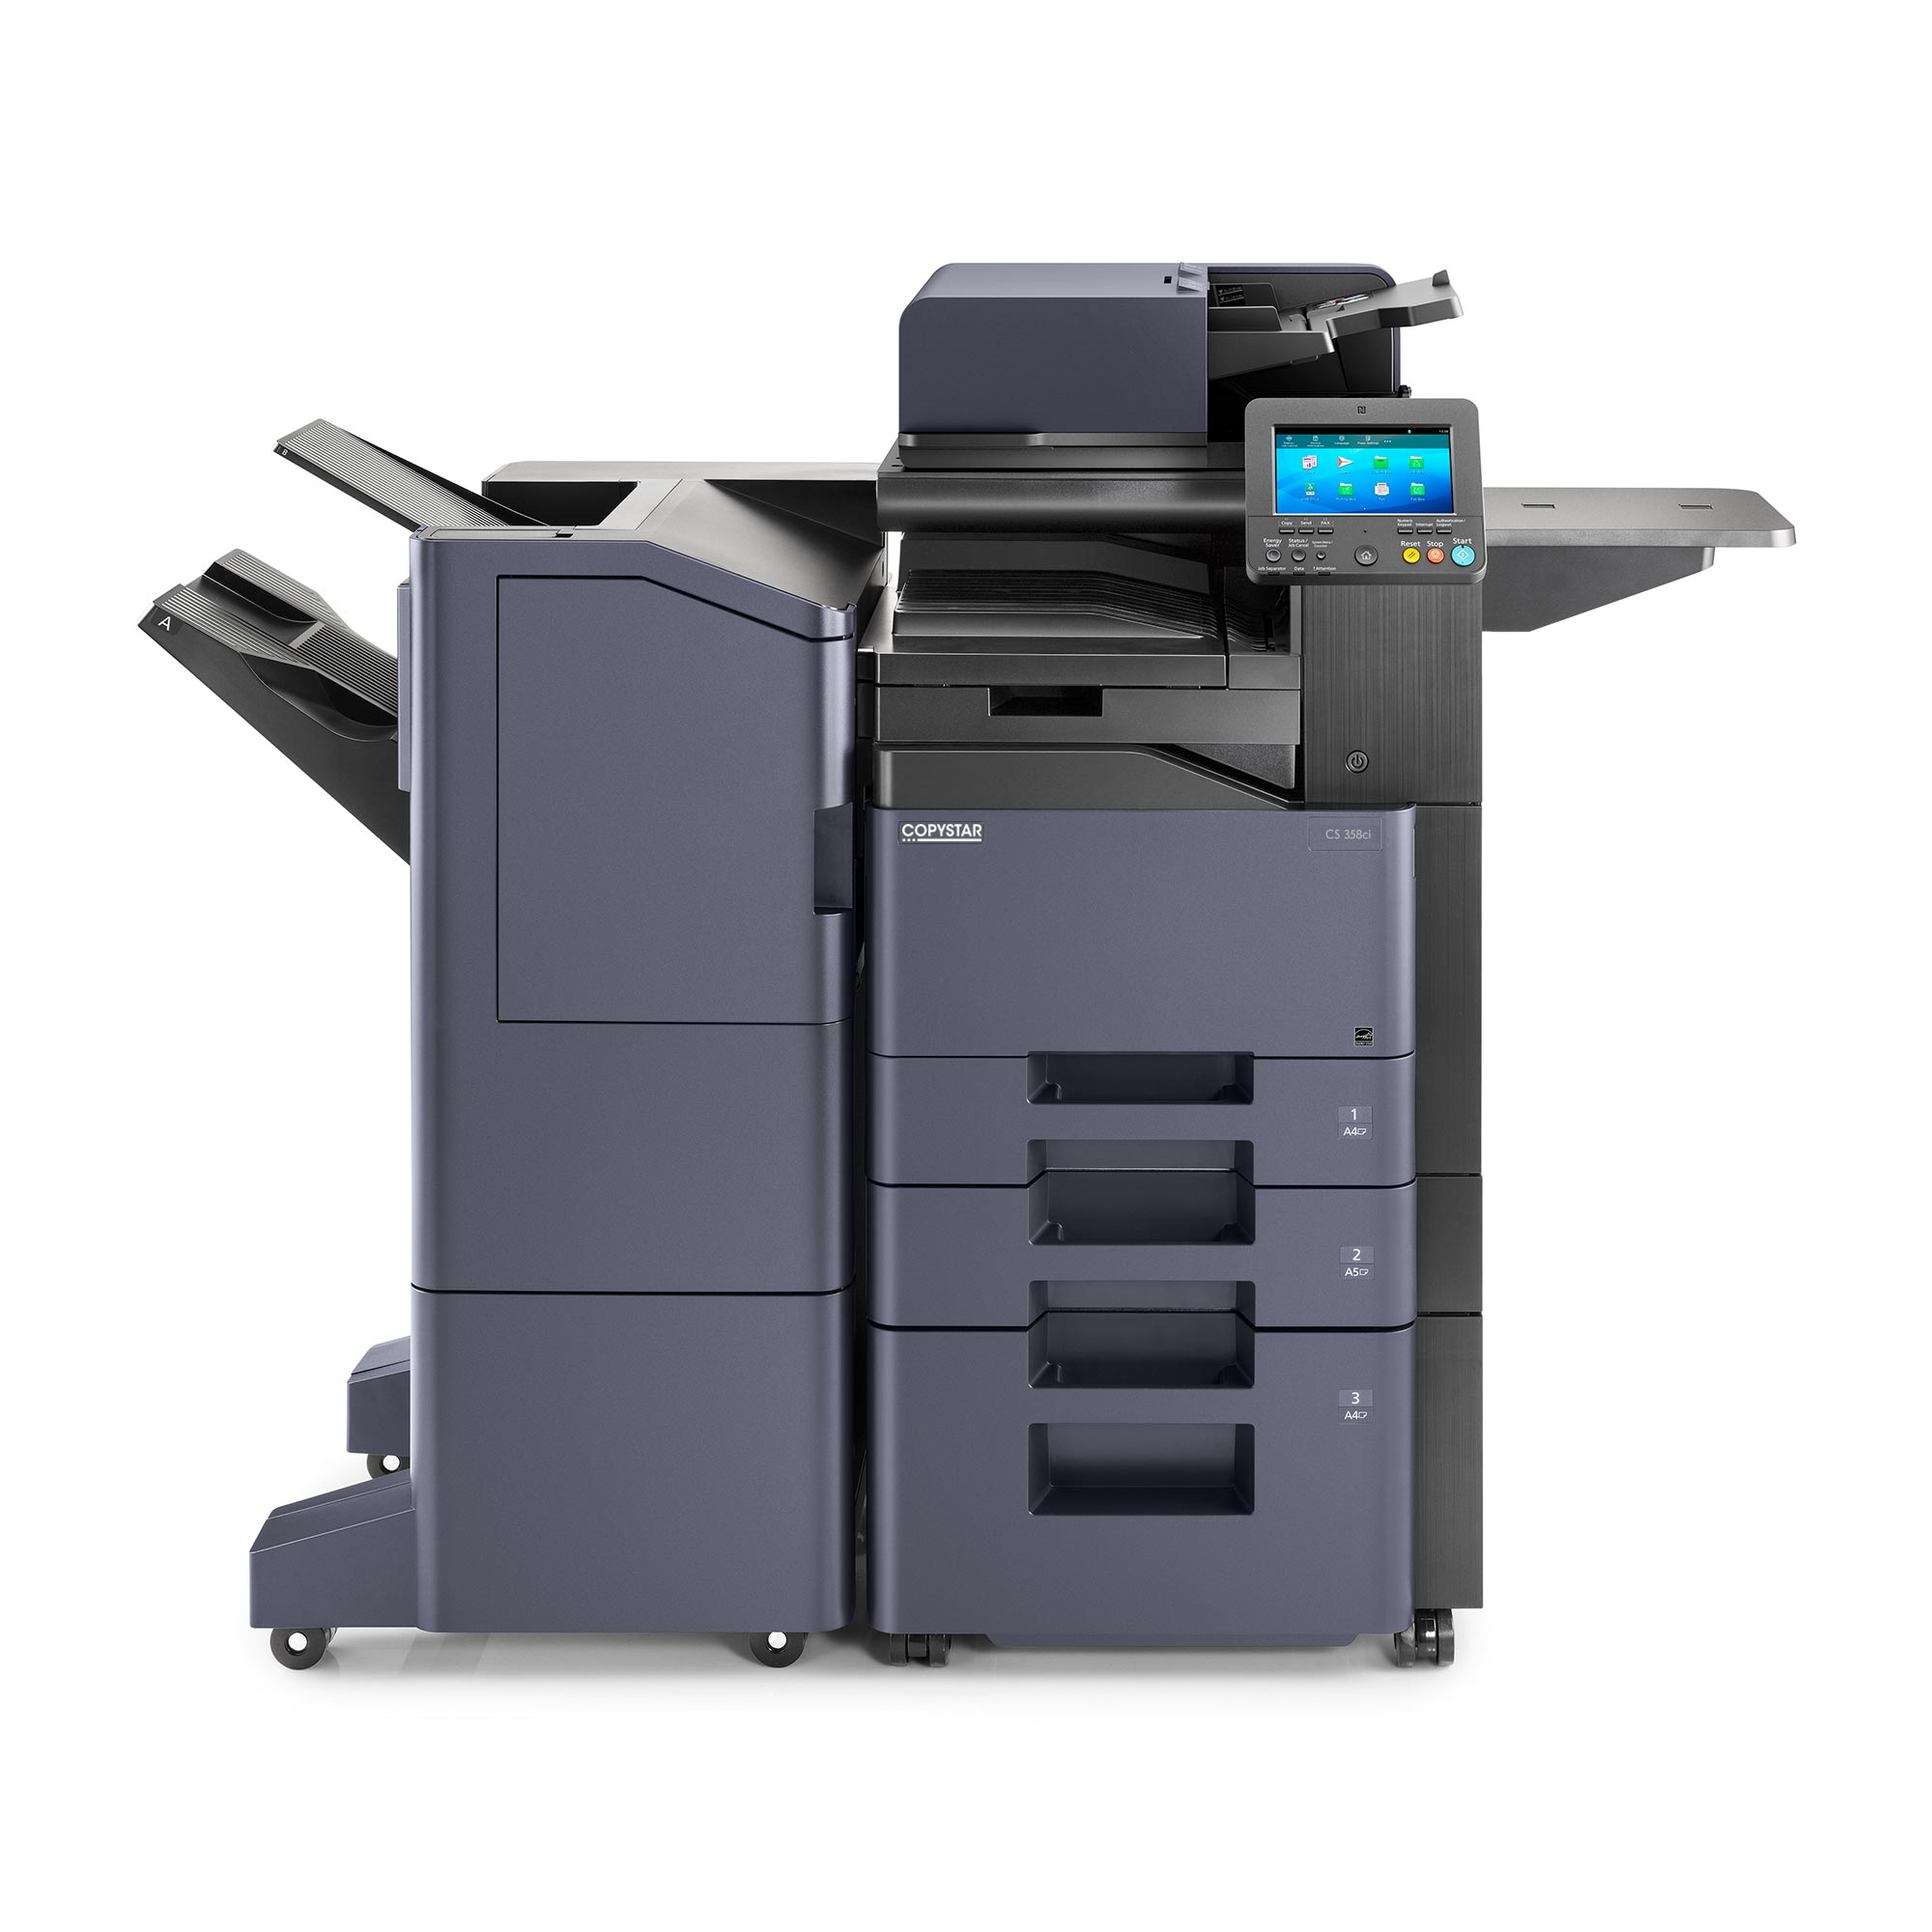 Kyocera CS_358ci - Copy Machine Leasing